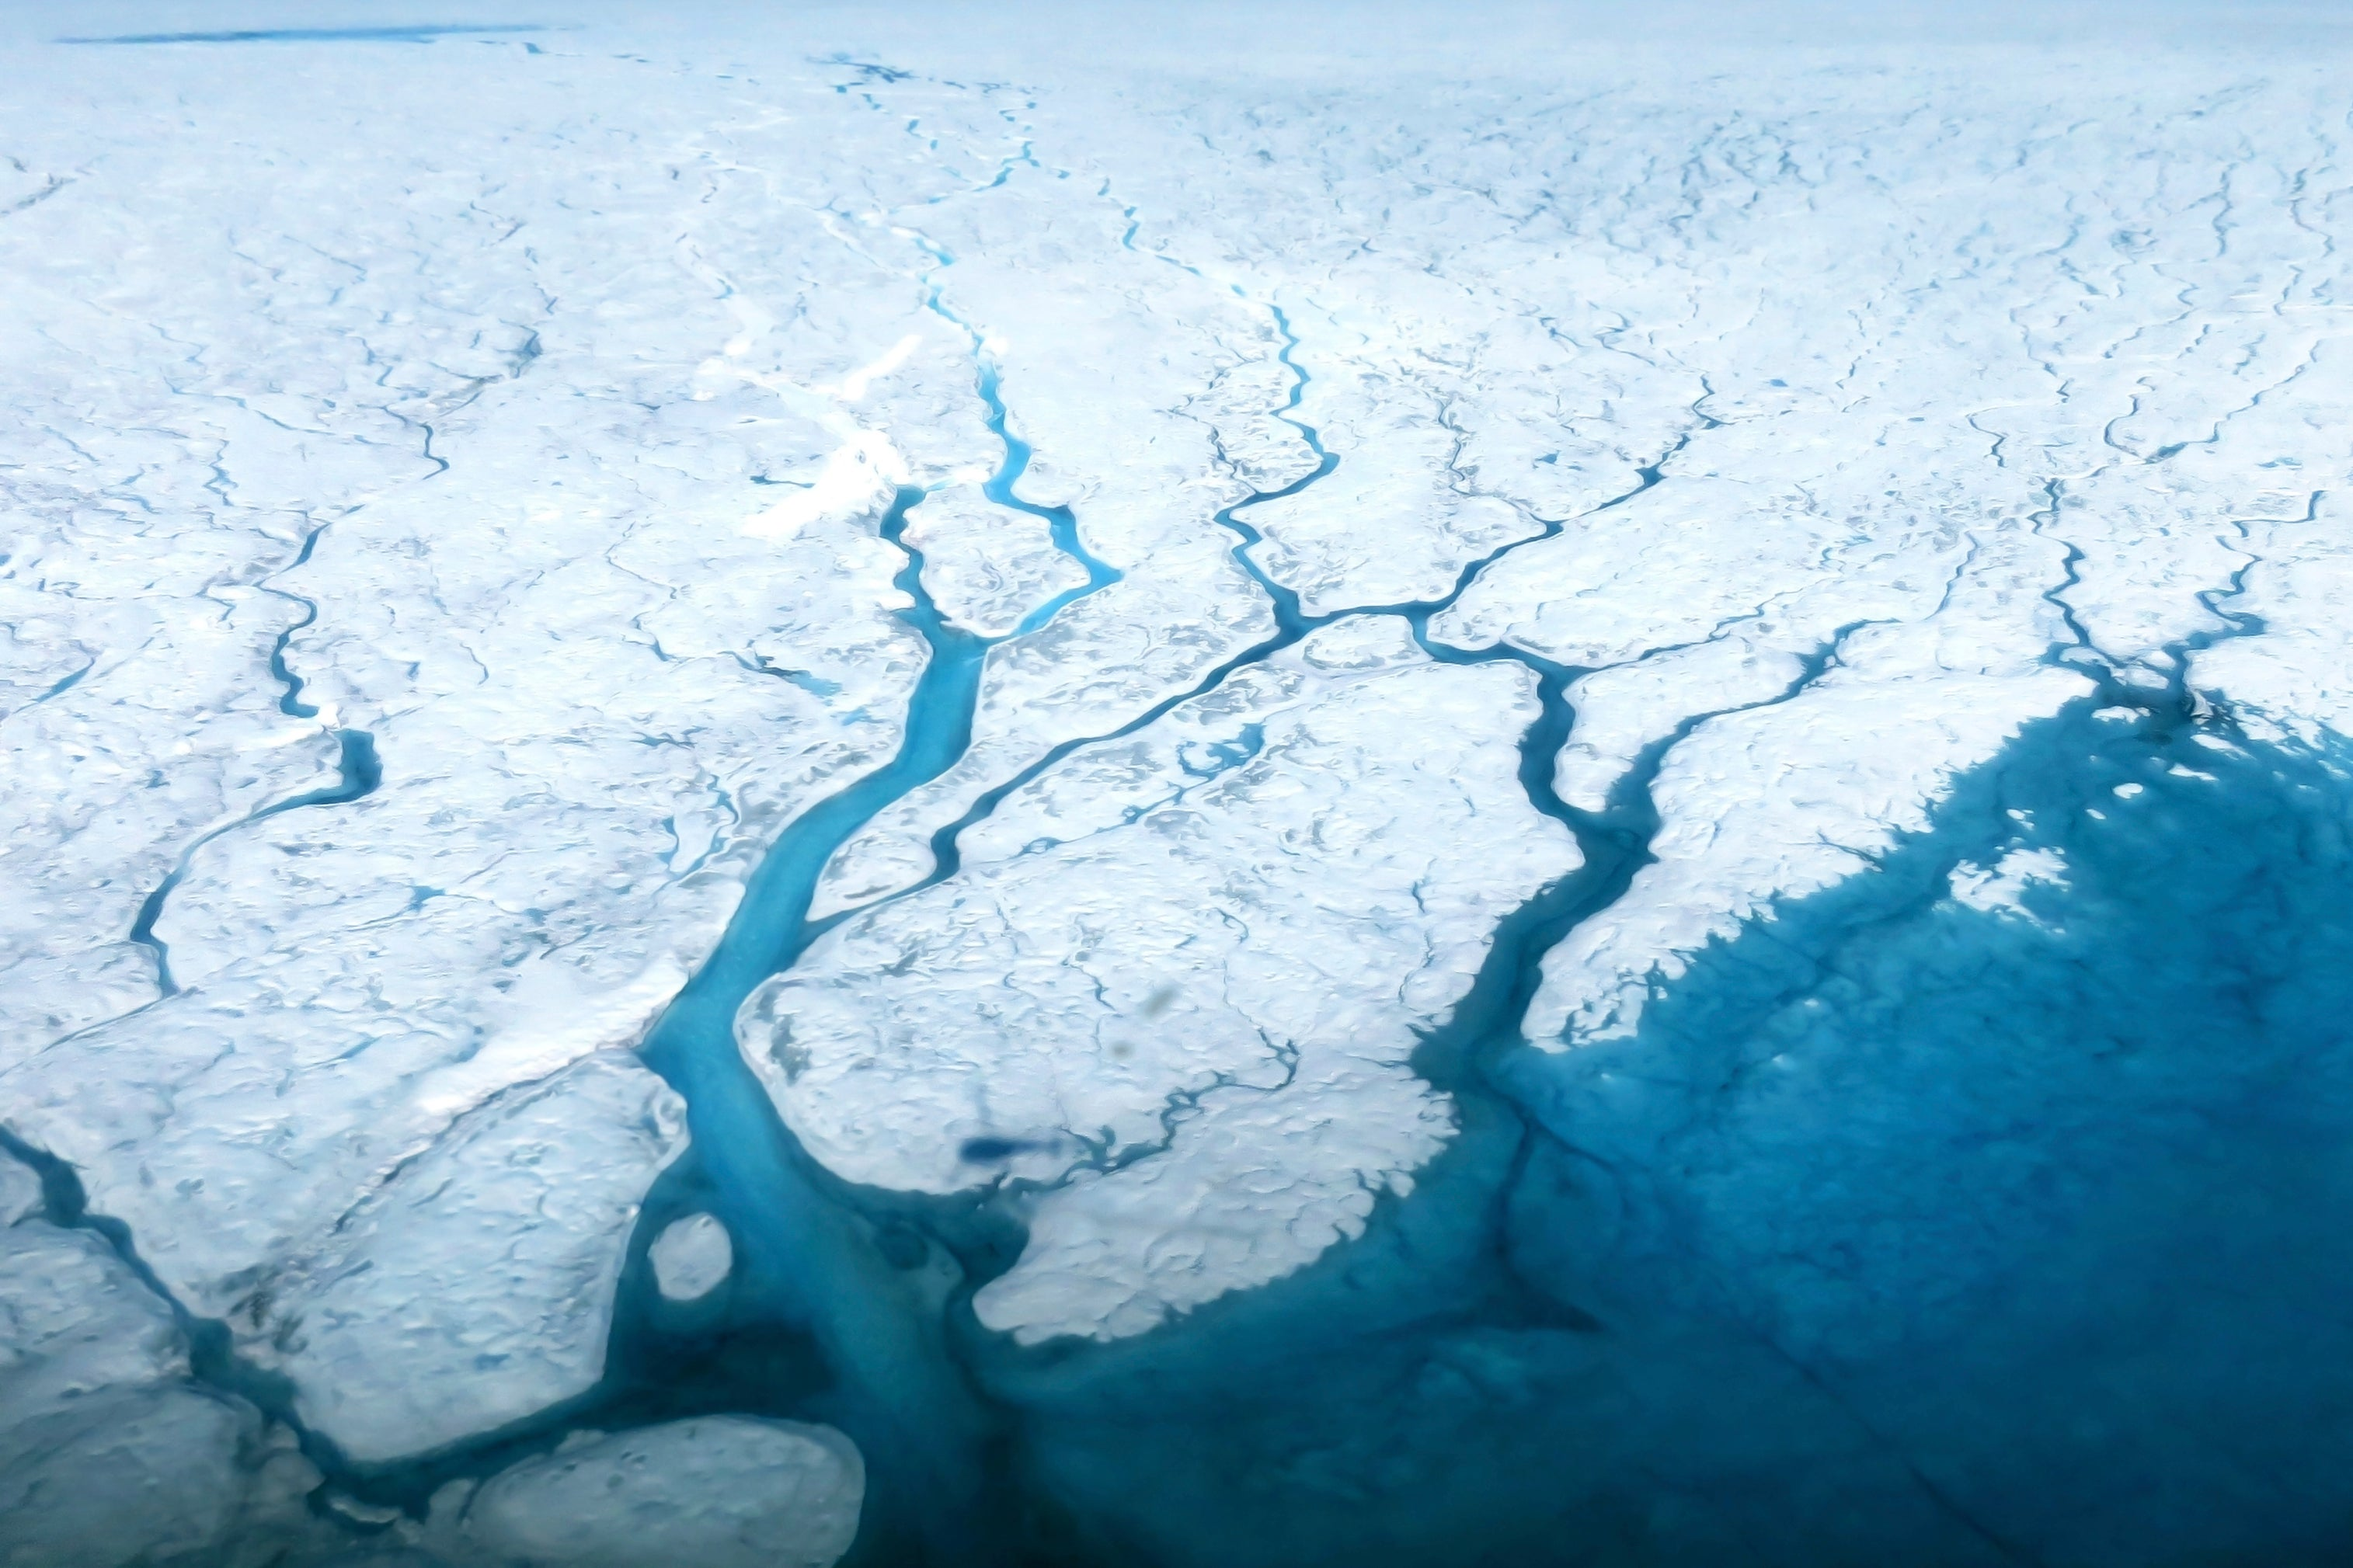 Darker Ice Causes Greenland to Melt Faster - Scientific American